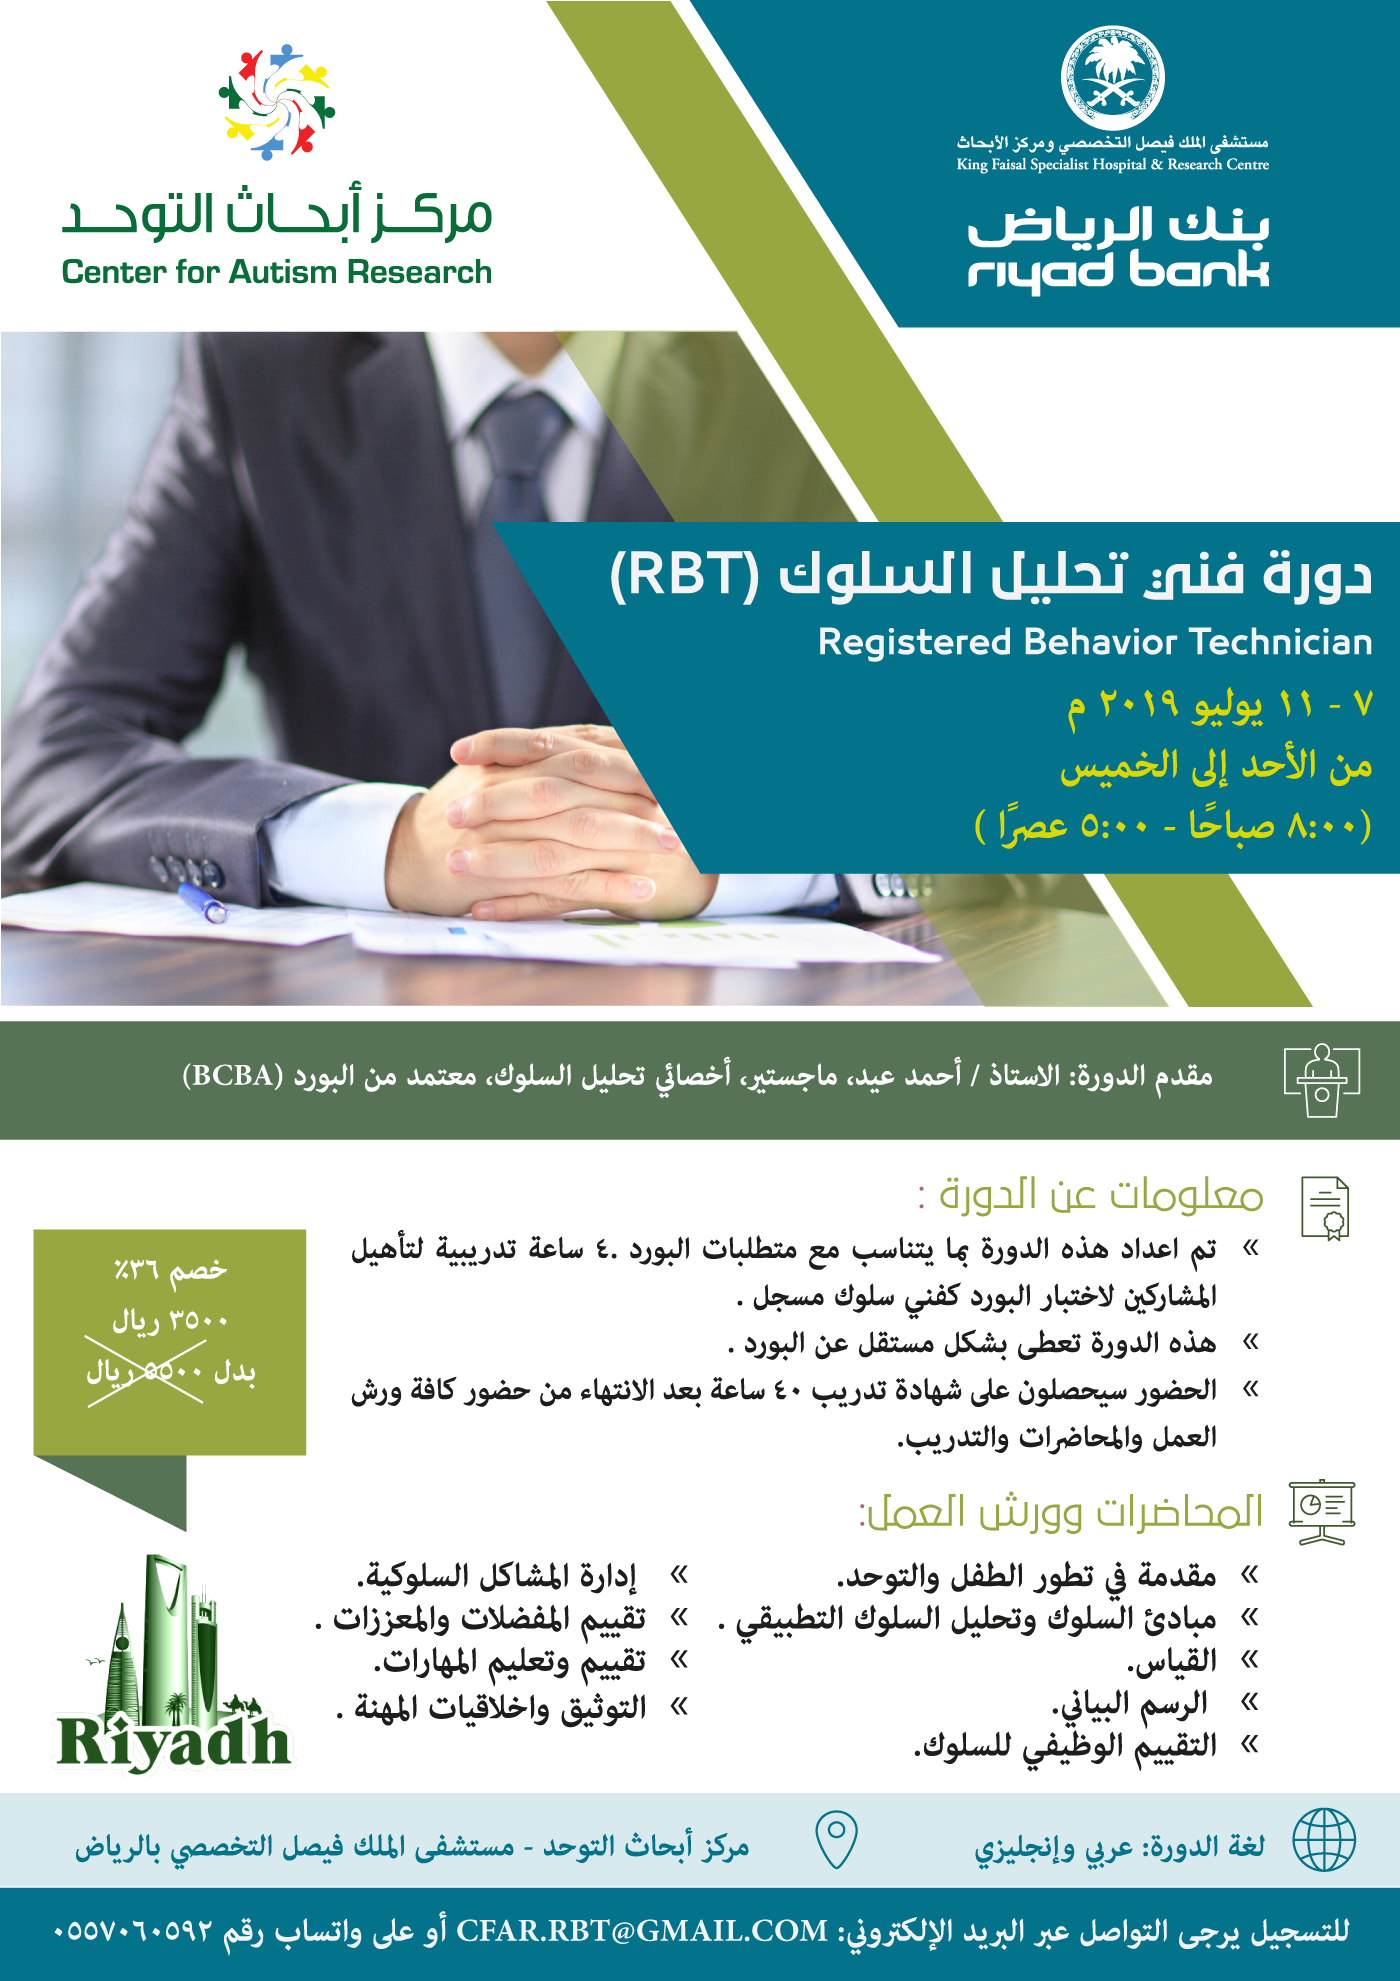 The upcoming training course will be on the 17th of February